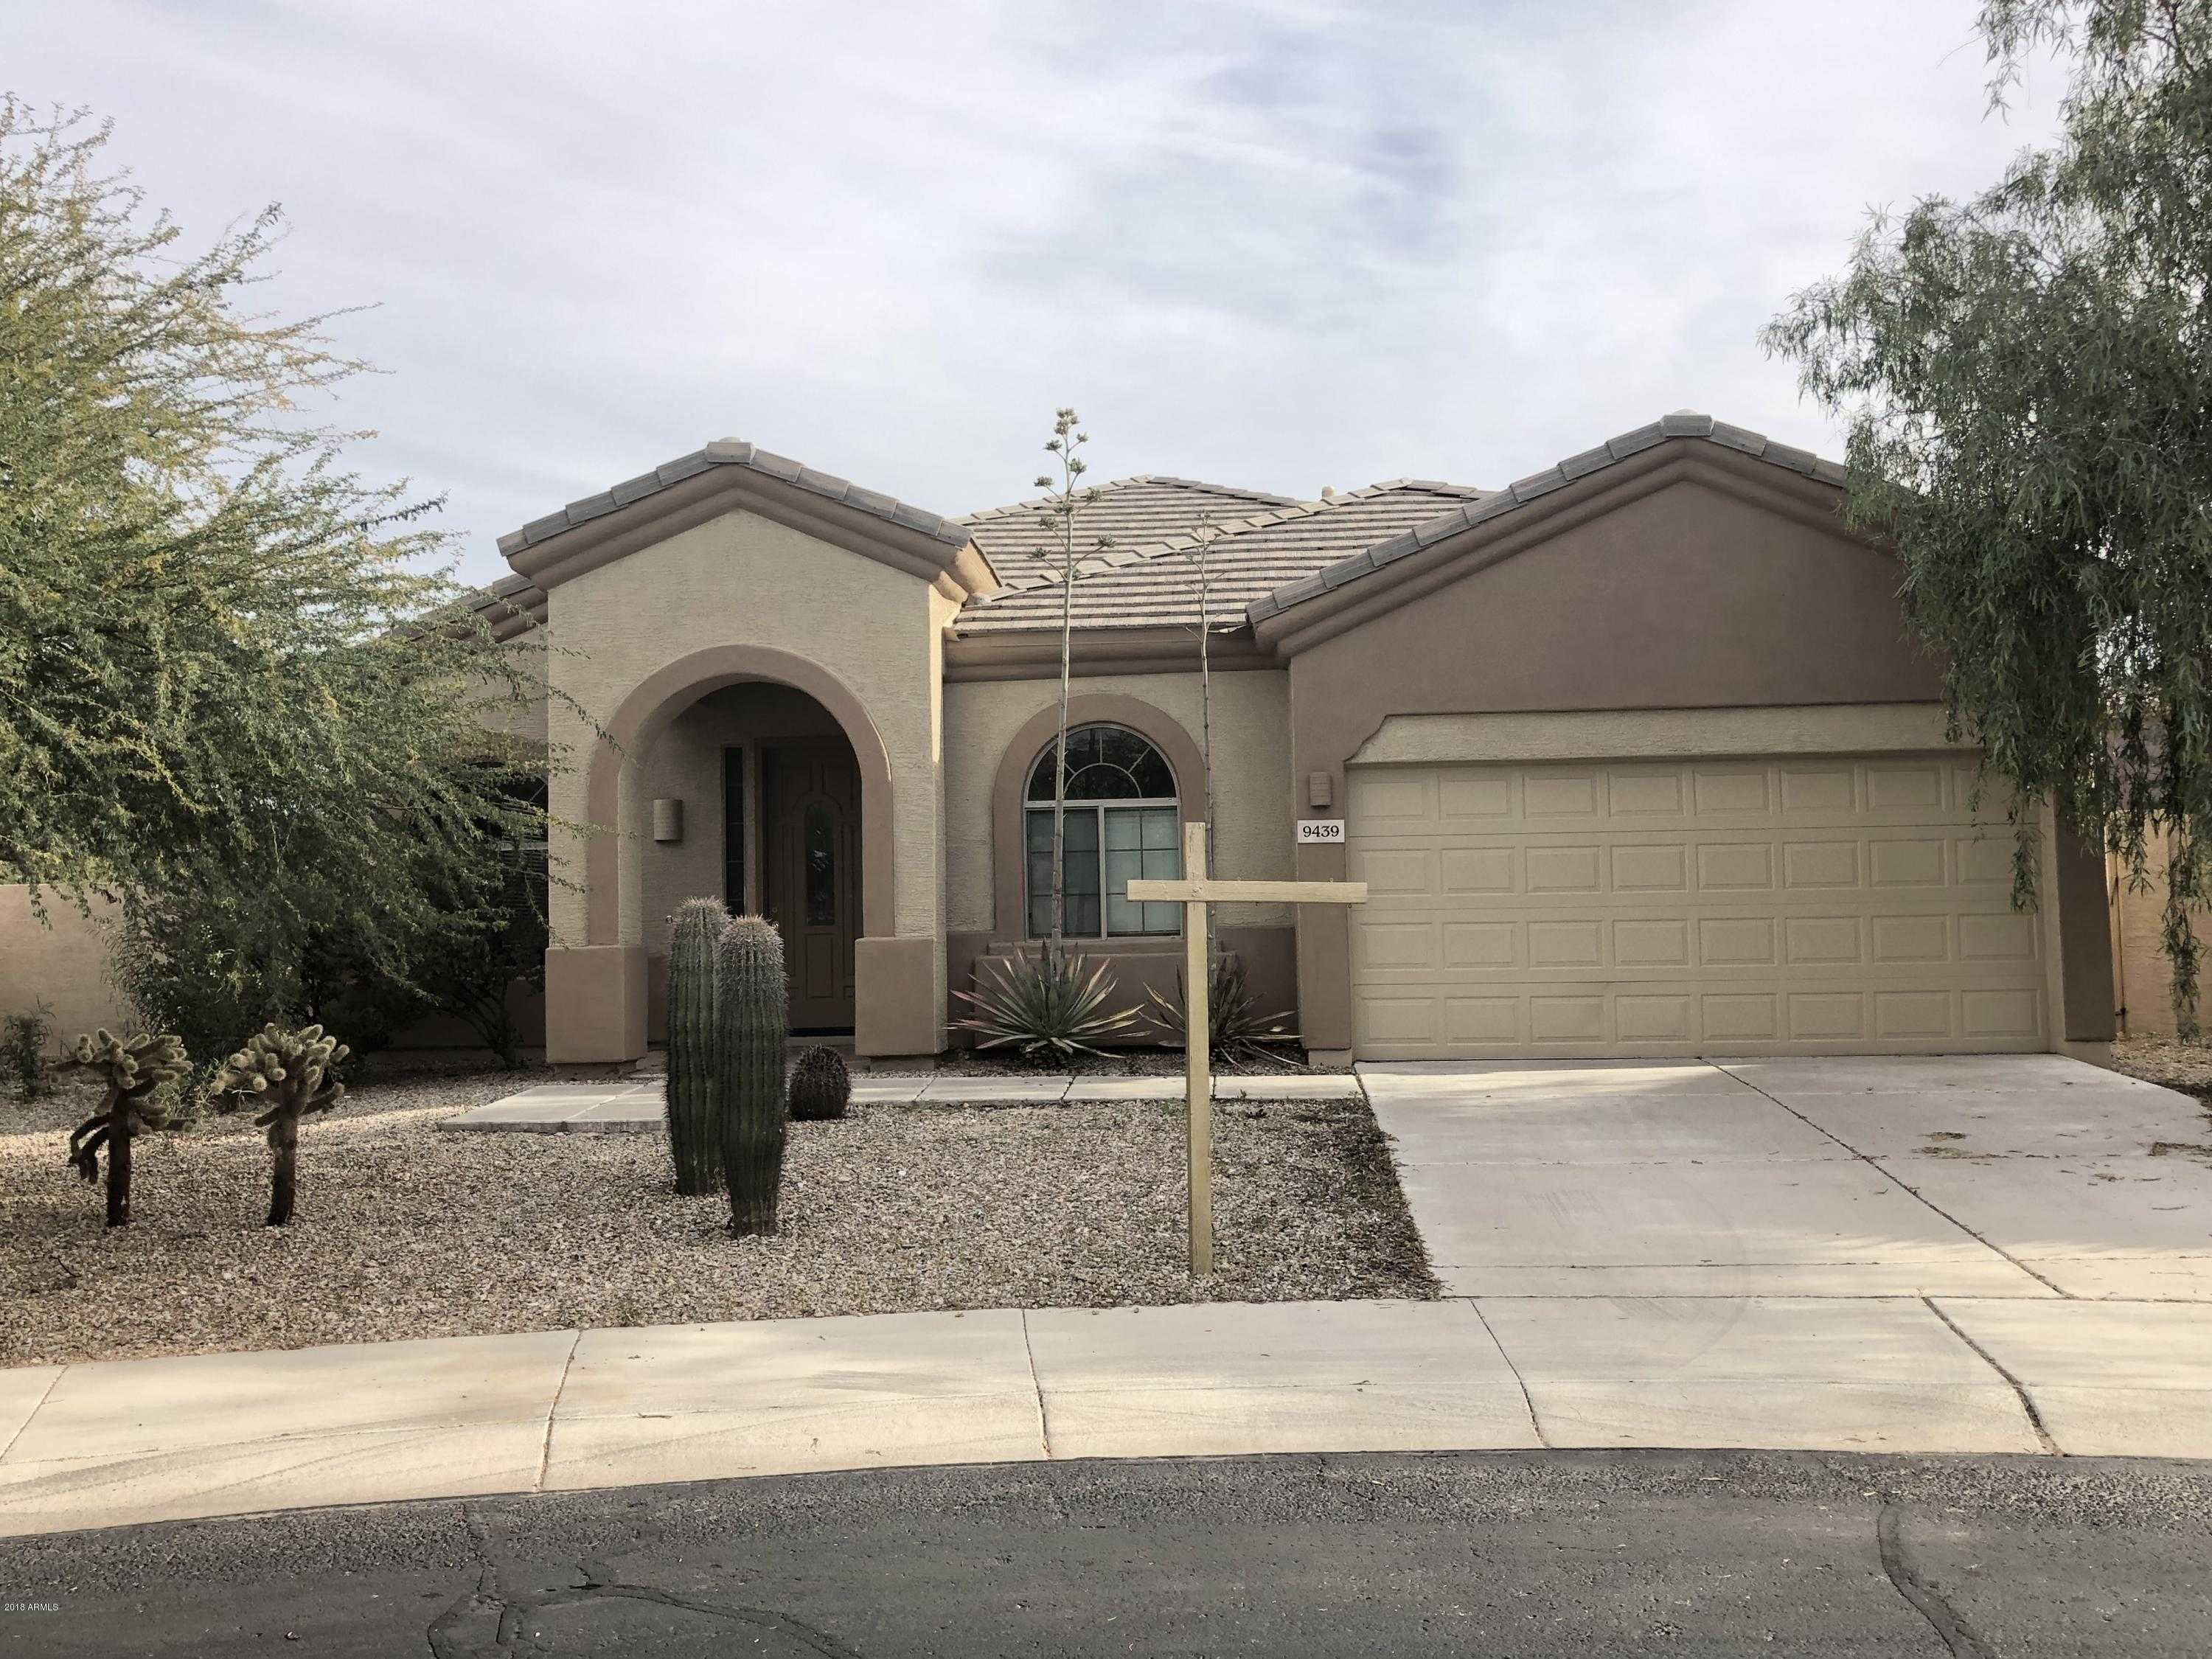 $294,900 - 3Br/2Ba - Home for Sale in Estrella Mountain Ranch Parcel 71, Goodyear